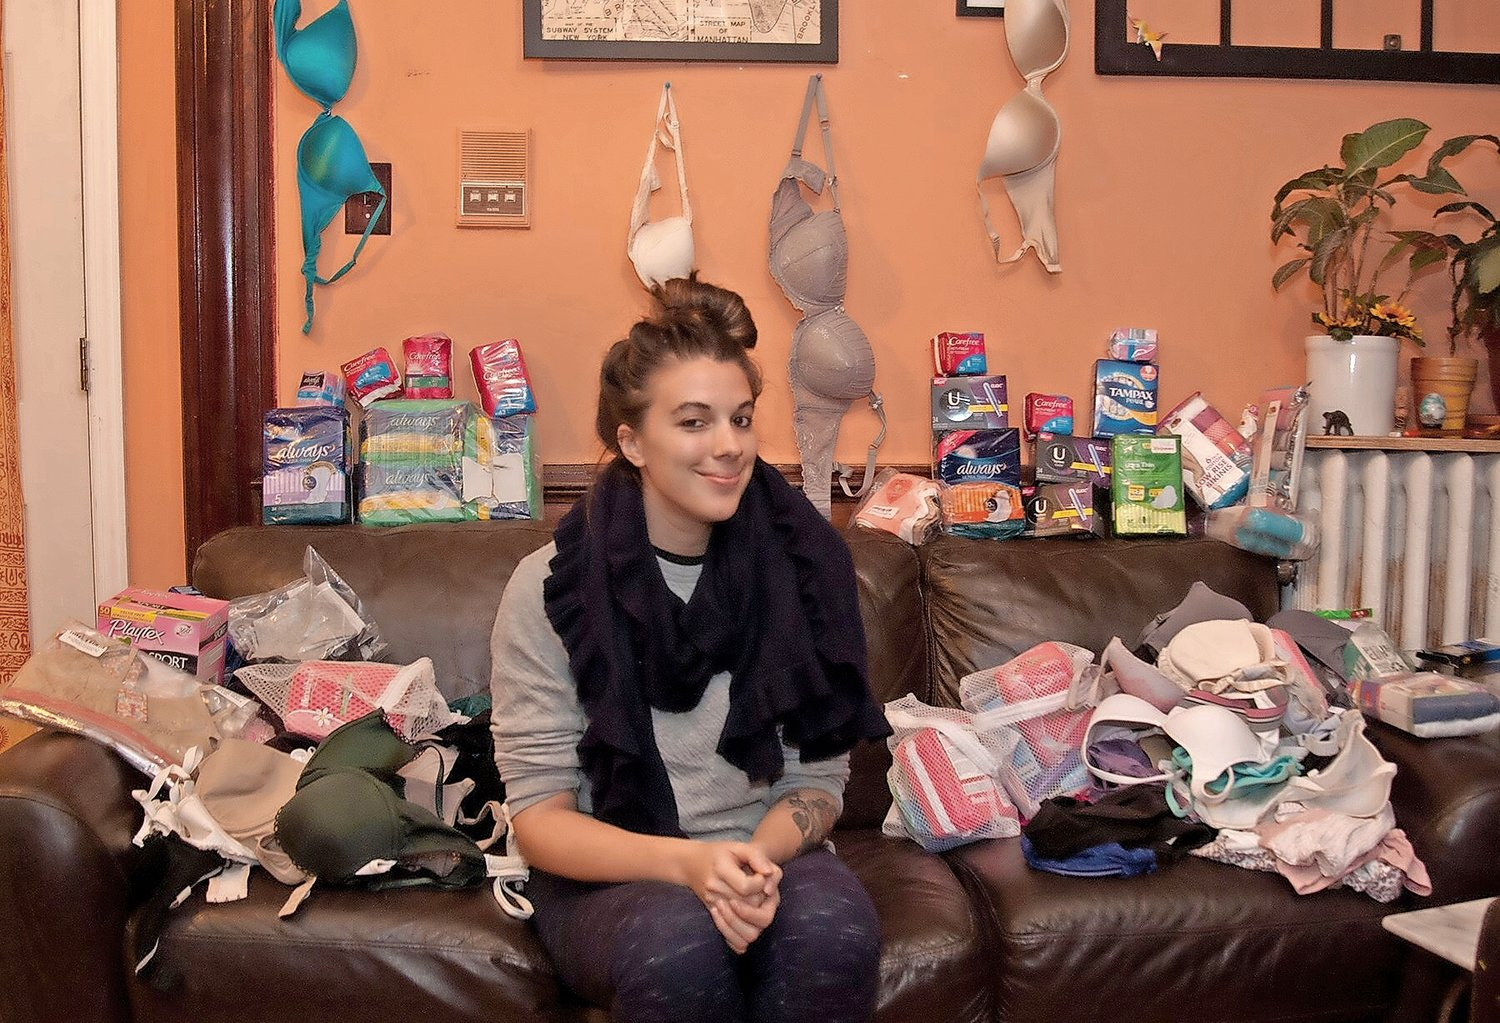 Alexa Telano, a Mepham High School graduate, is helping women by supplying them with feminine hygiene products through Dignity Matters.